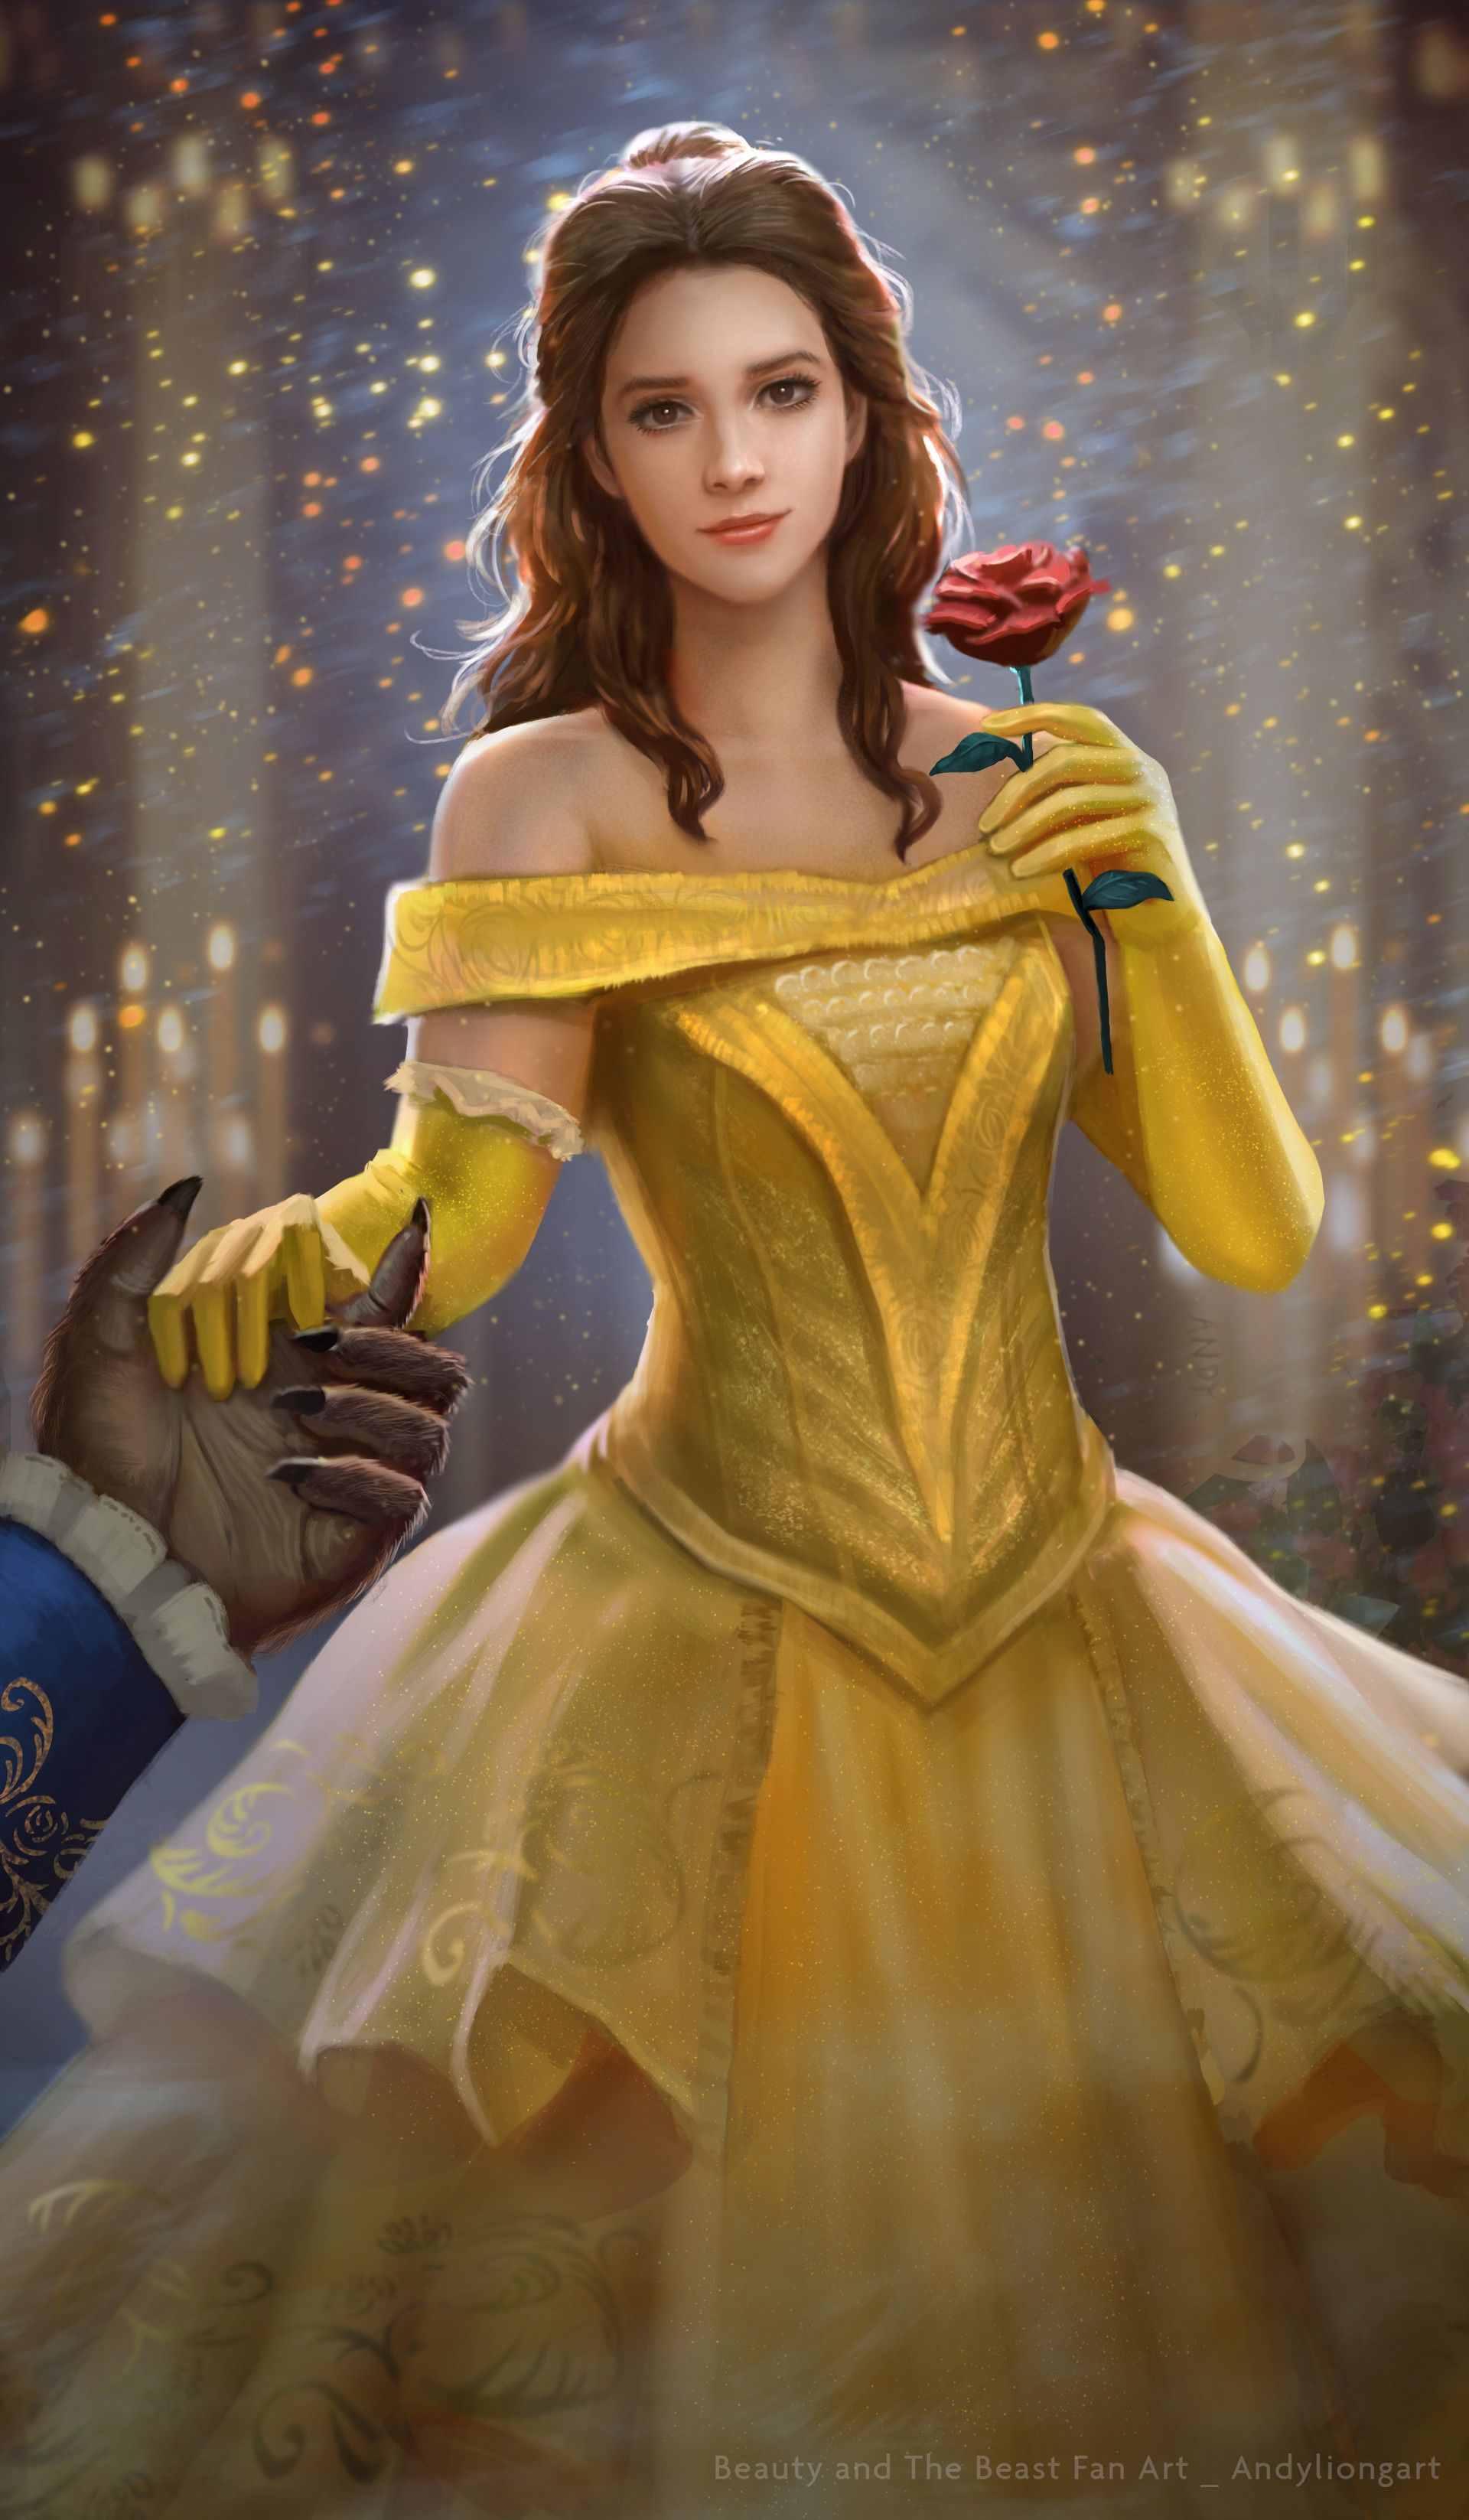 I Always Love Disney Character And I Am Very Excited For The Live